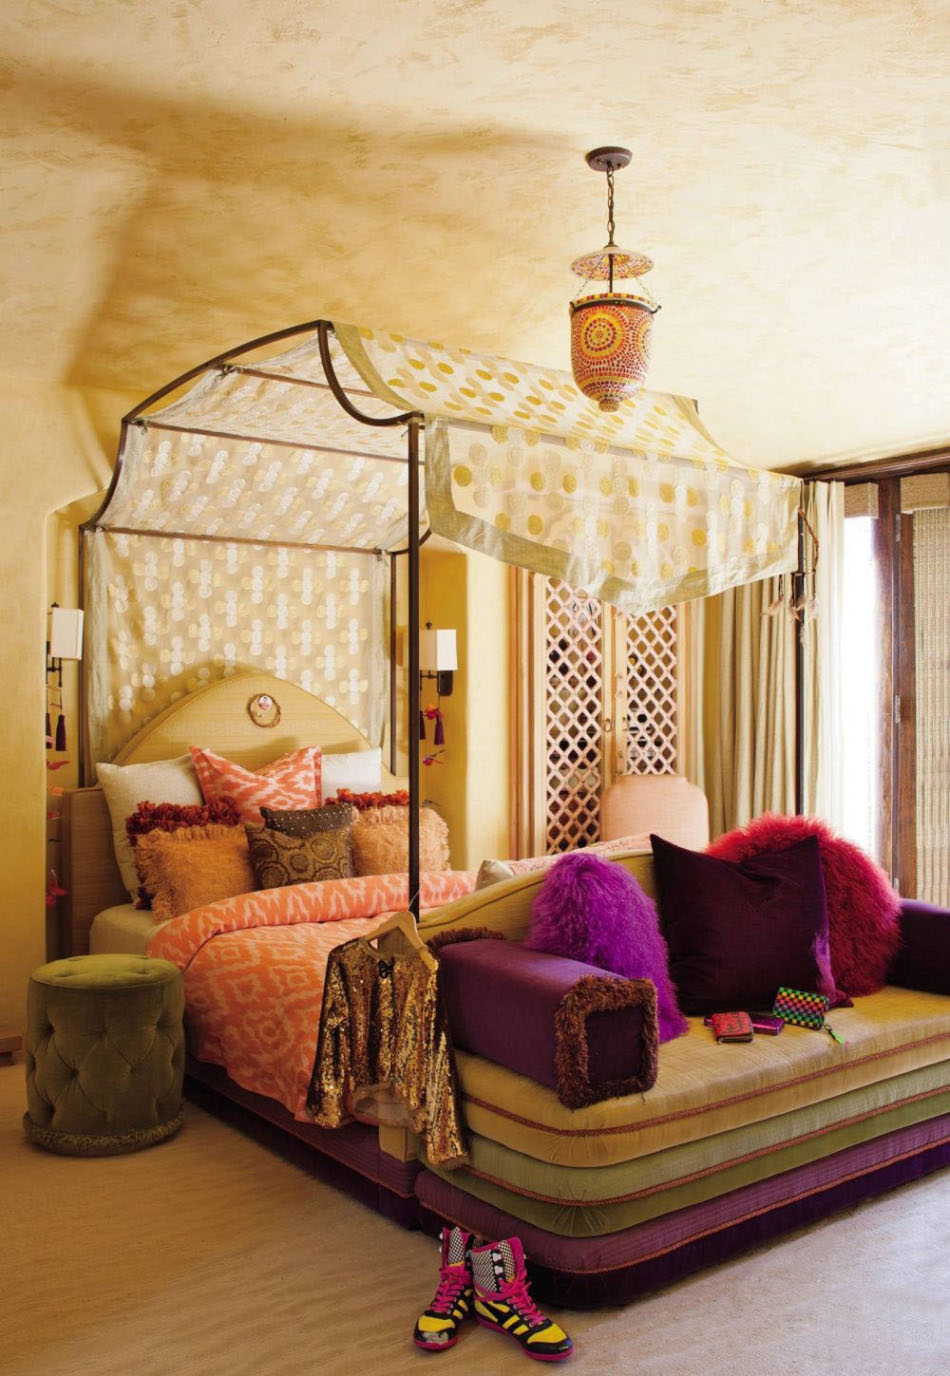 Flaunt Your Bedrooms with Decorative Canopy Beds (part-1) : An Exotic Californian Bedroom Flaunting The Iron Four Poster Is Draped With A Canopy Bed Of Patterned Silk Reaching Over The Bed To Create A Beautiful Effect